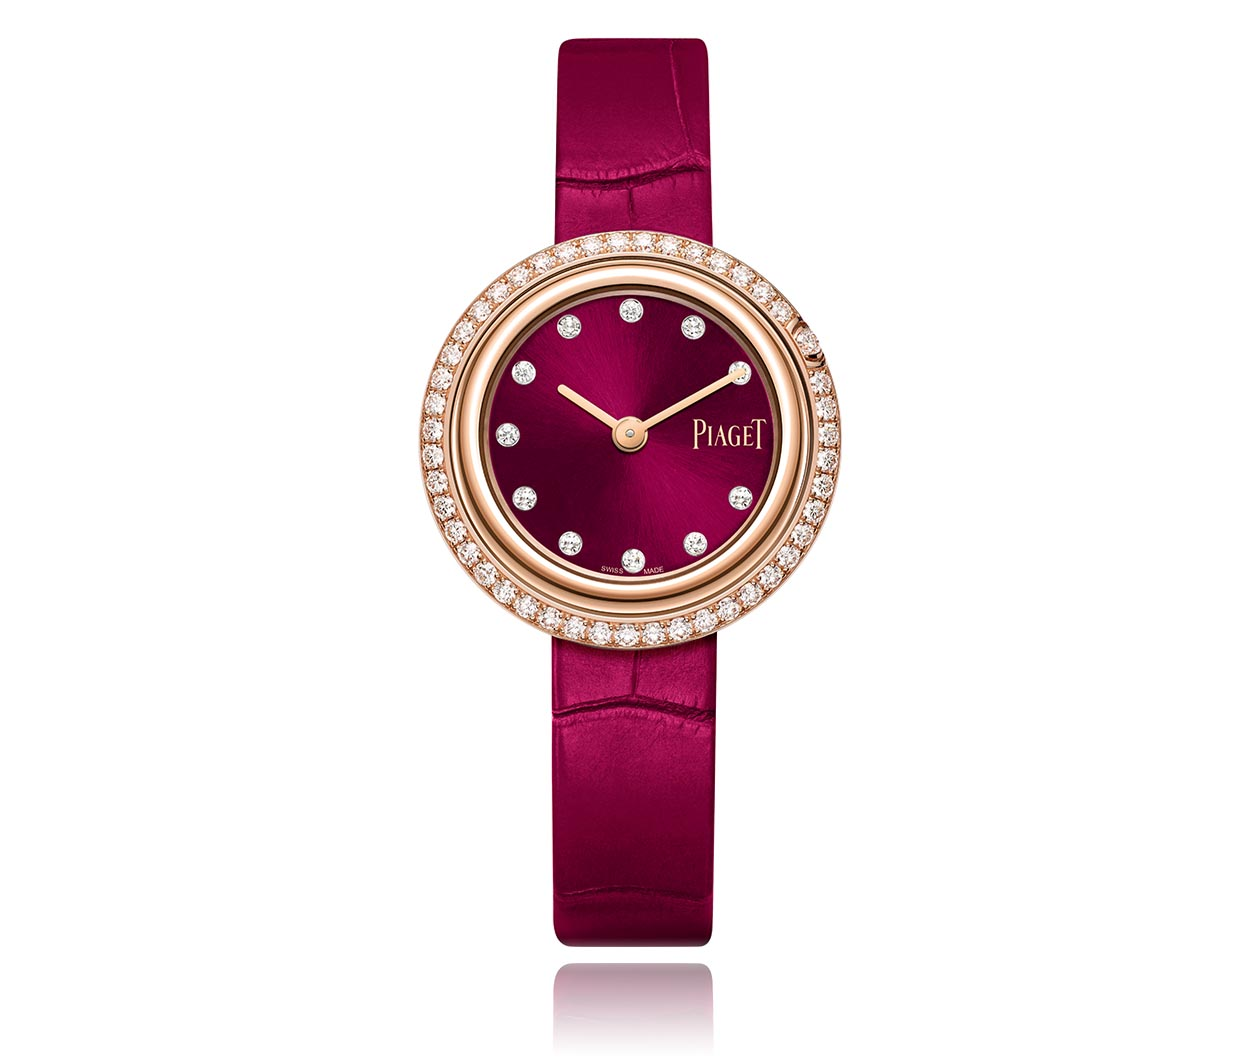 Piaget Possession watch G0A44086 Carousel 1 FINAL